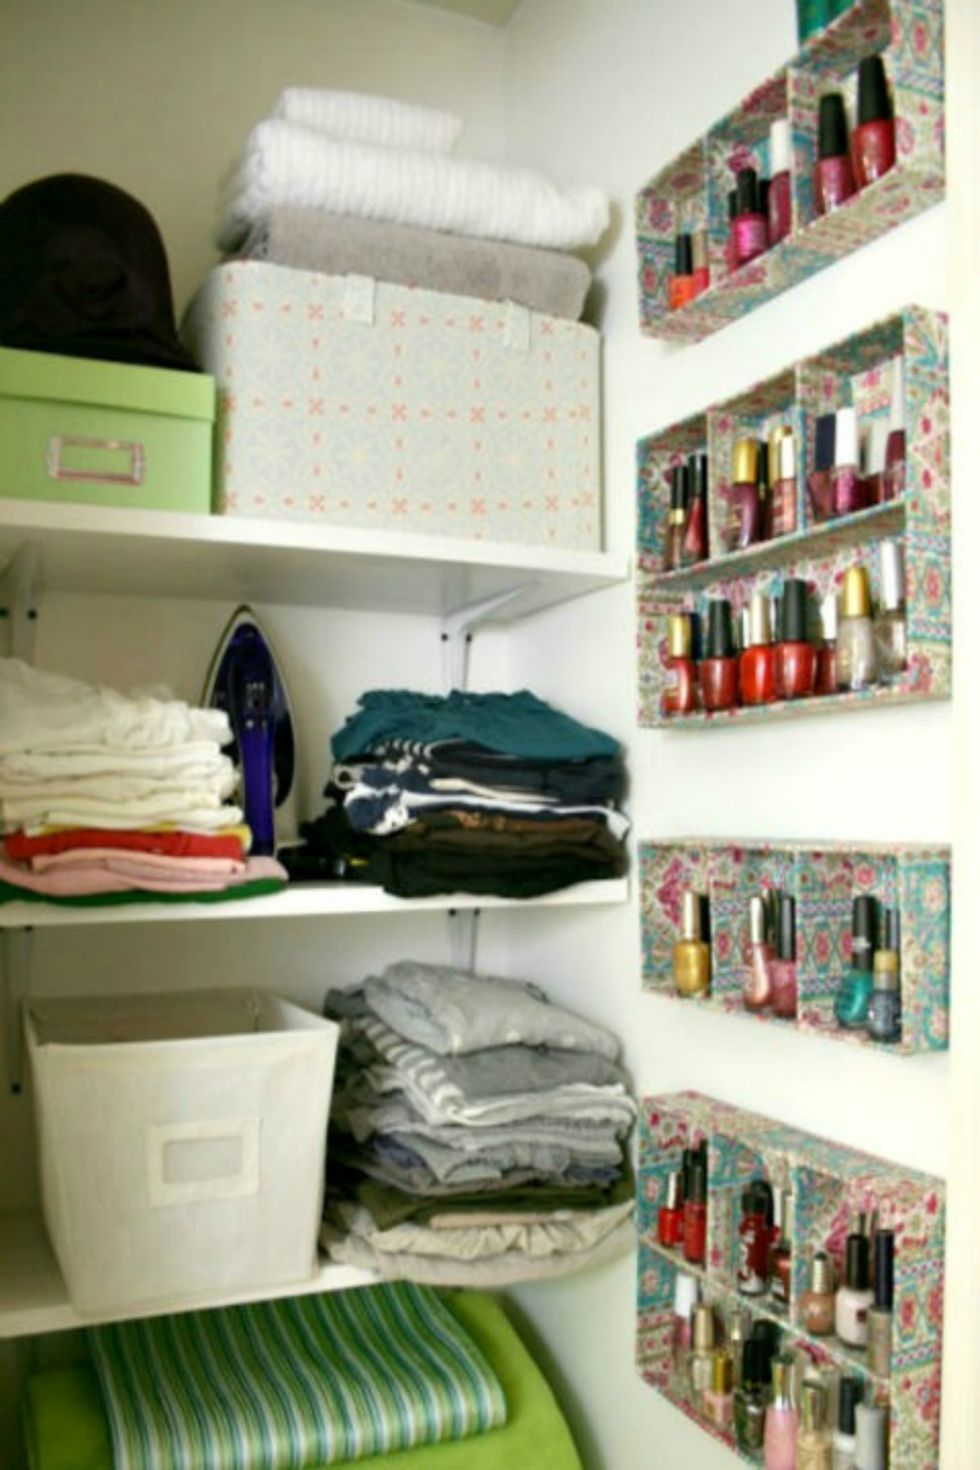 Living Room Organization 100 home organization tips - how to organize your home